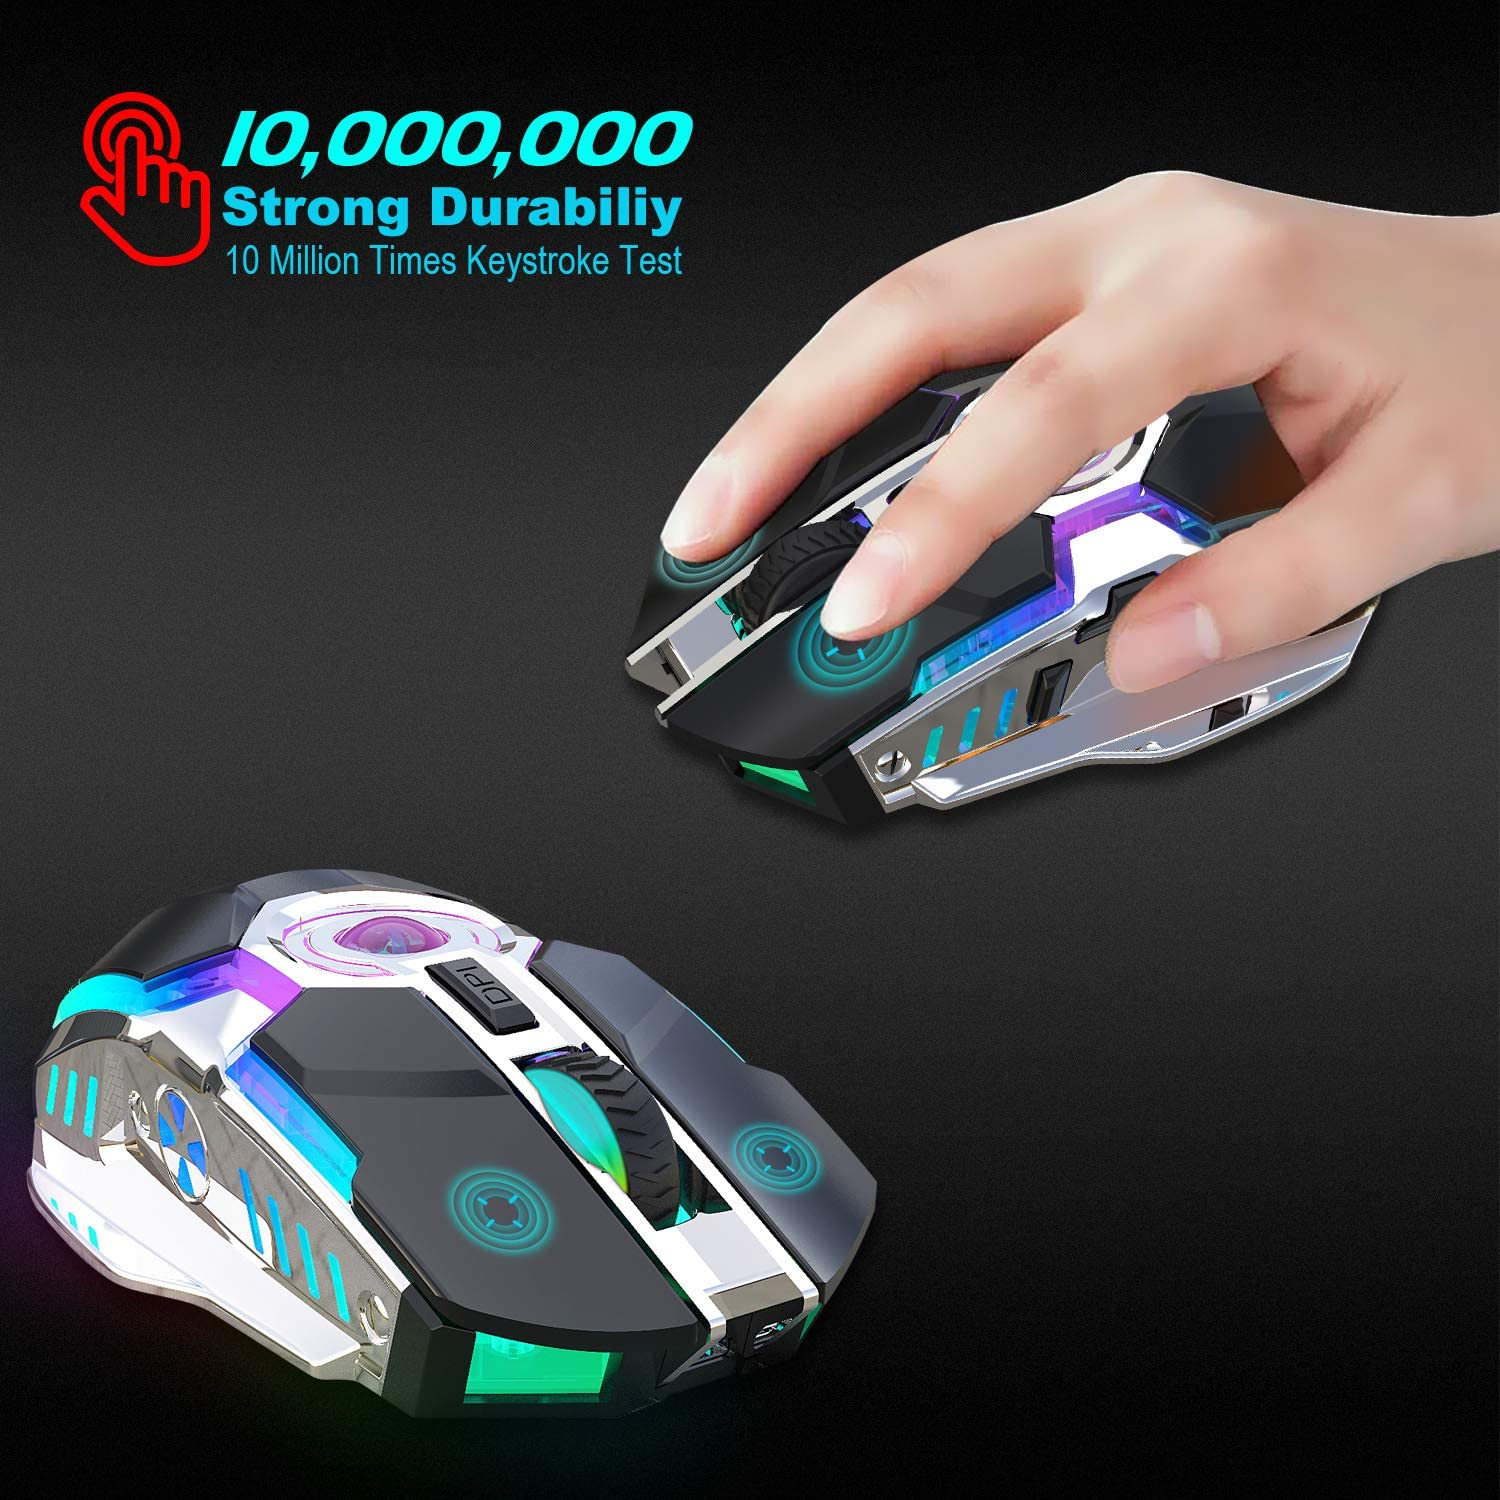 Alician Electronics for Rechargeable Wireless Mouse Silent Ergonomic Gaming Mouse RGB Backlight for Laptop Computer ZERODATE-T30GY RGB